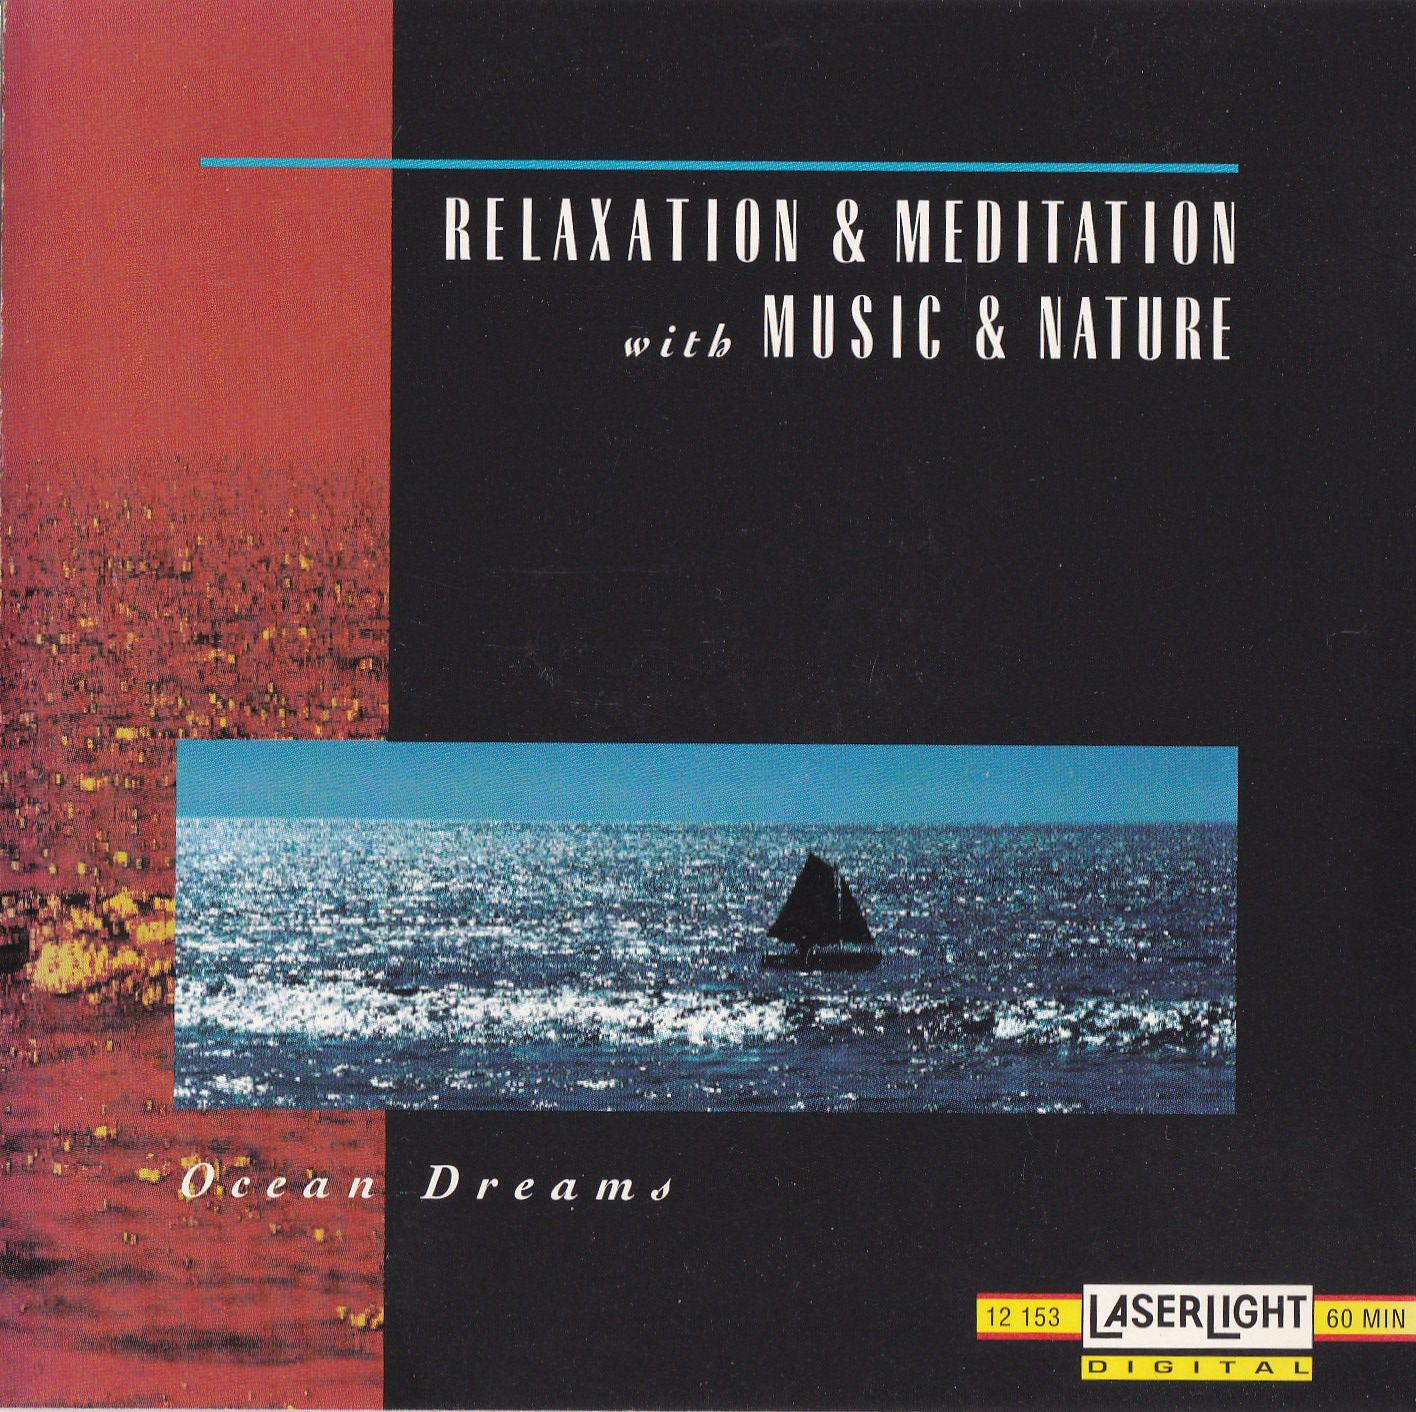 CD relaxation & meditation with music & natural – ocean dreams